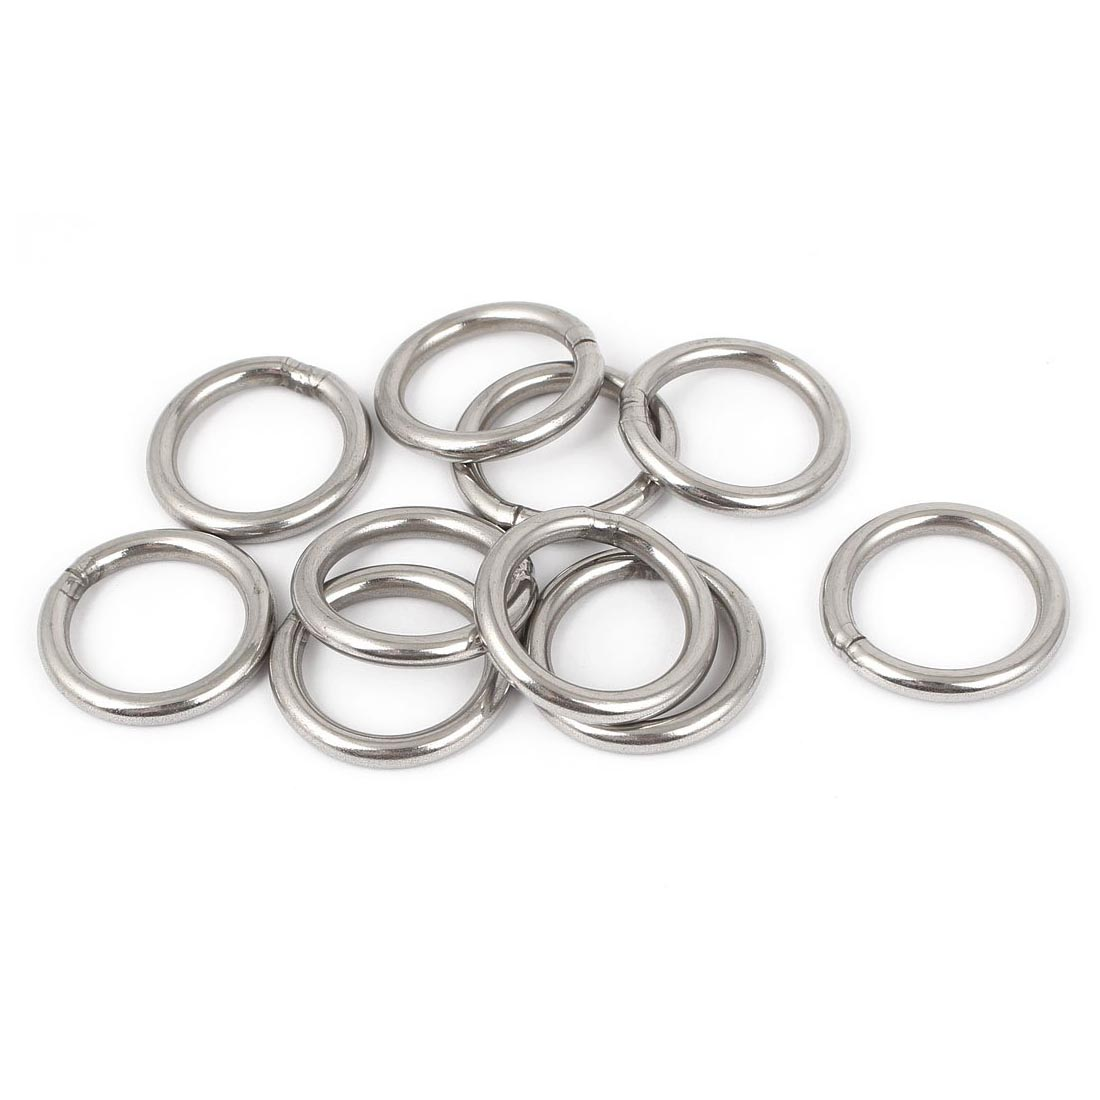 10 Pcs M4 X 30mm Smooth Welded Precision Polished Stainless Steel Strapping Welded Round O Rings For Boat Applications